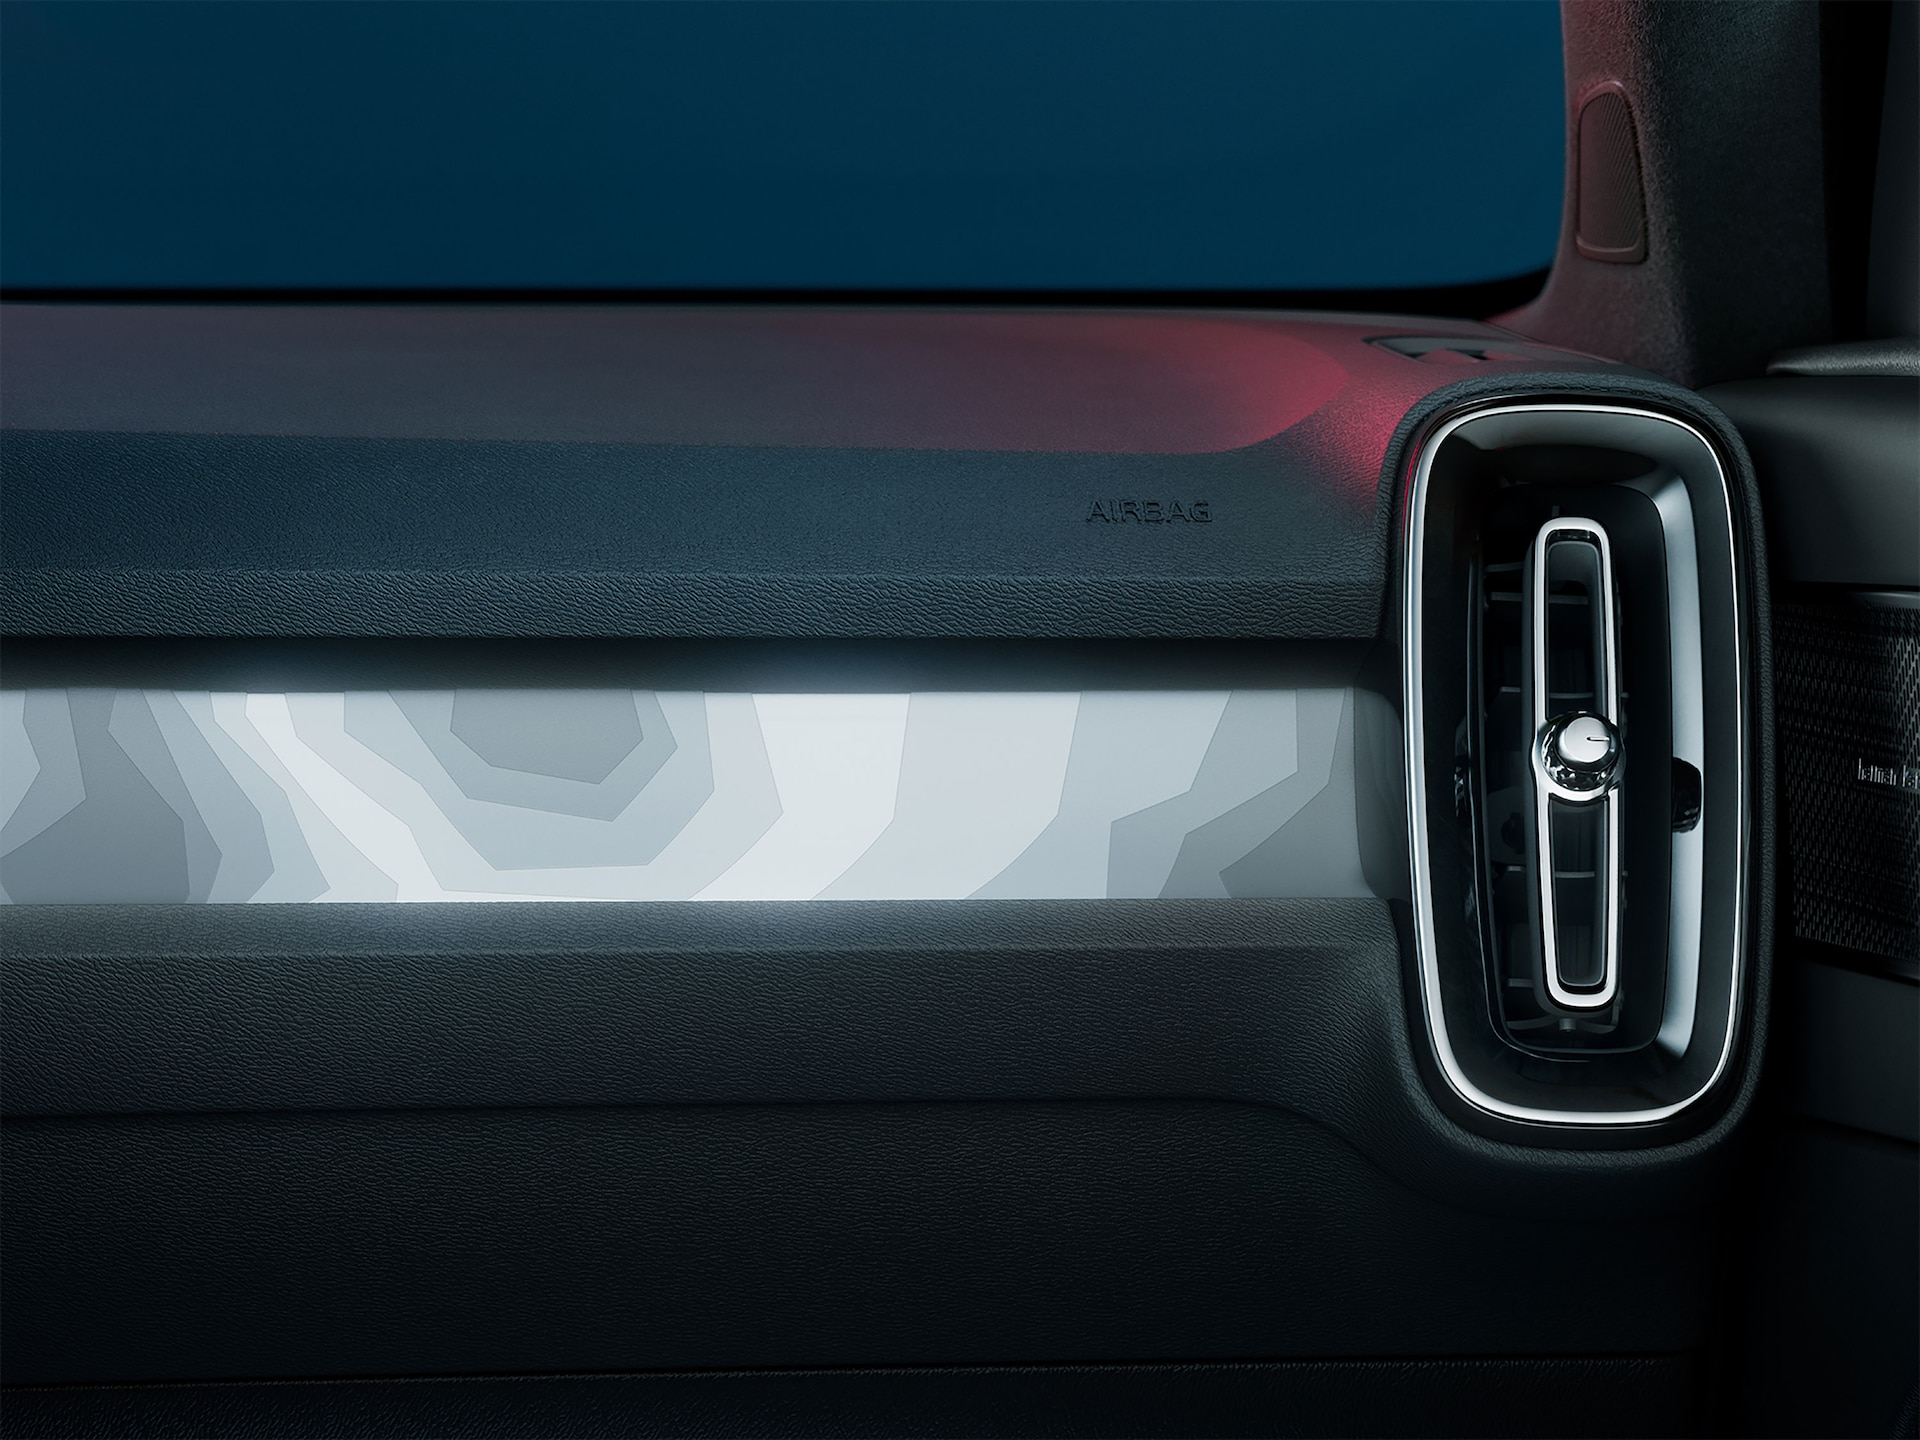 A close-up image of the front pixel lights of the C40 Recharge.